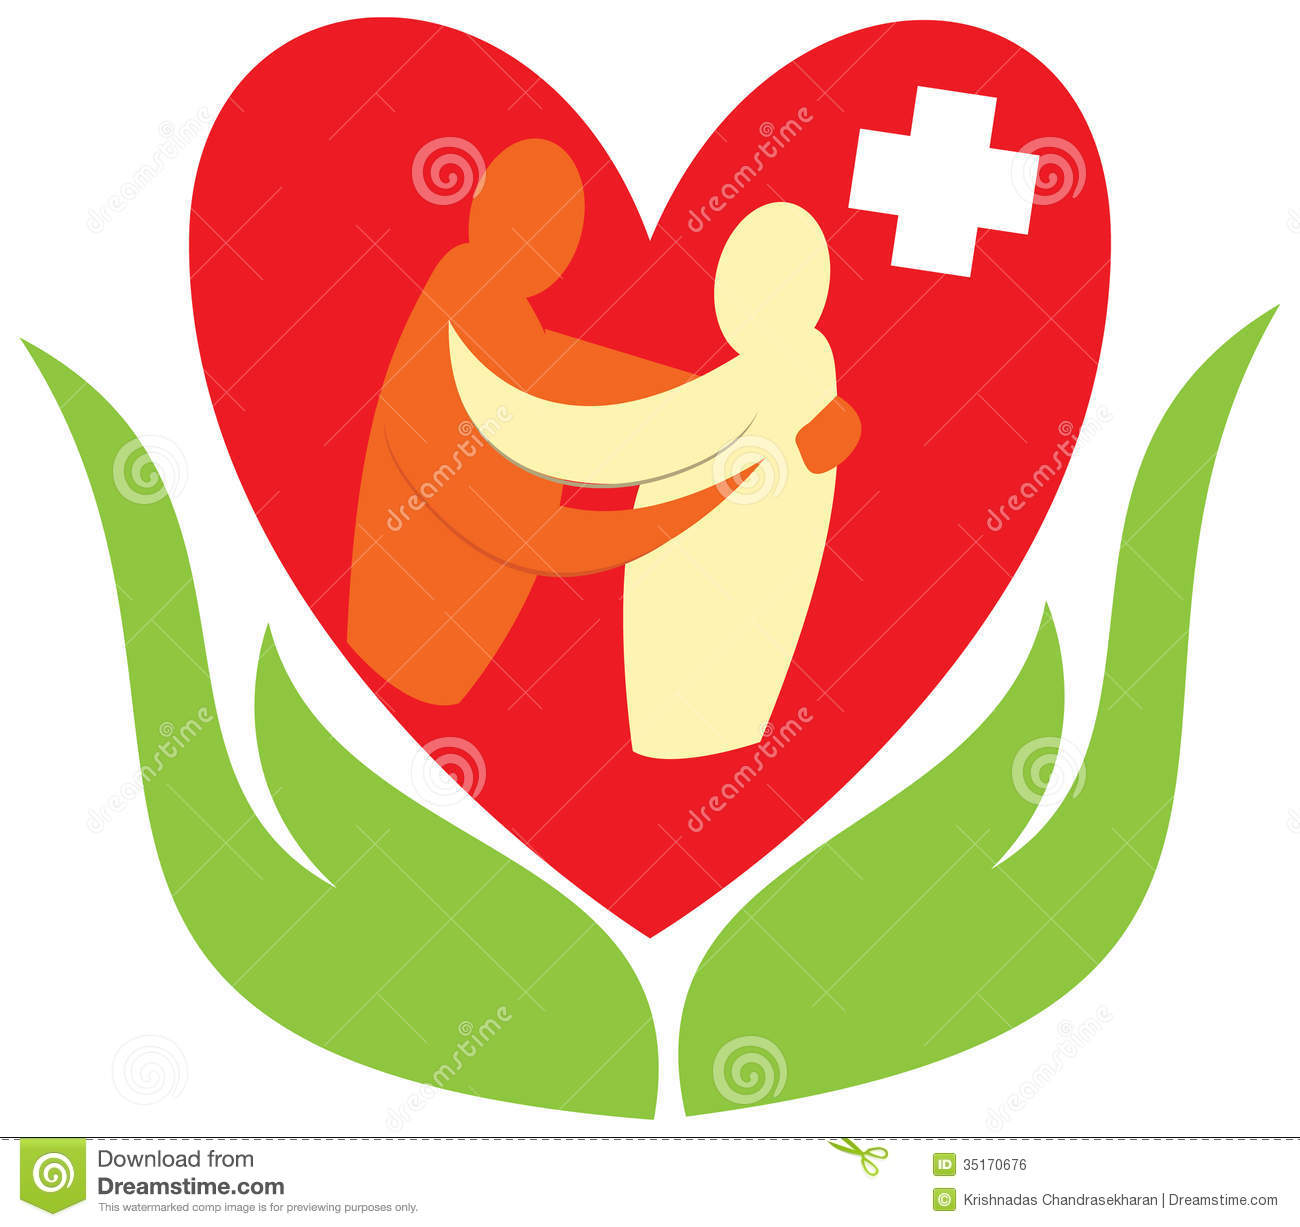 Doctor Care And Help Sign Royalty Free Stock Image - Image: 35170676